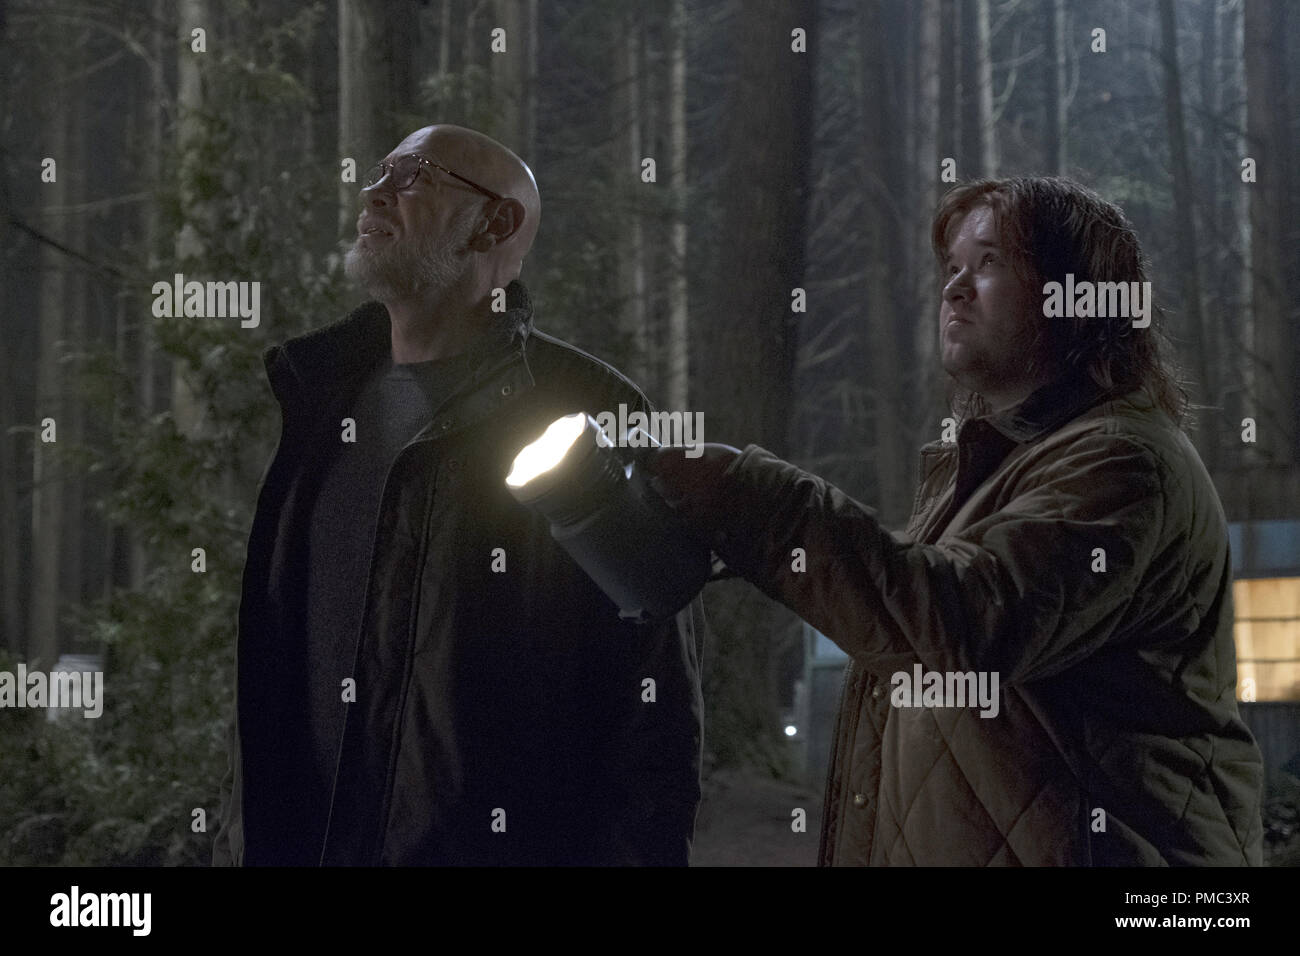 THE X-FILES:  L-R:  Mitch Pileggi and guest star Haley Joel Osment in the 'Kitten' episode of THE X-FILES on Fox. © 2018 Fox Broadcasting Co.  Cr:  Eric Millner/Fox - Stock Image